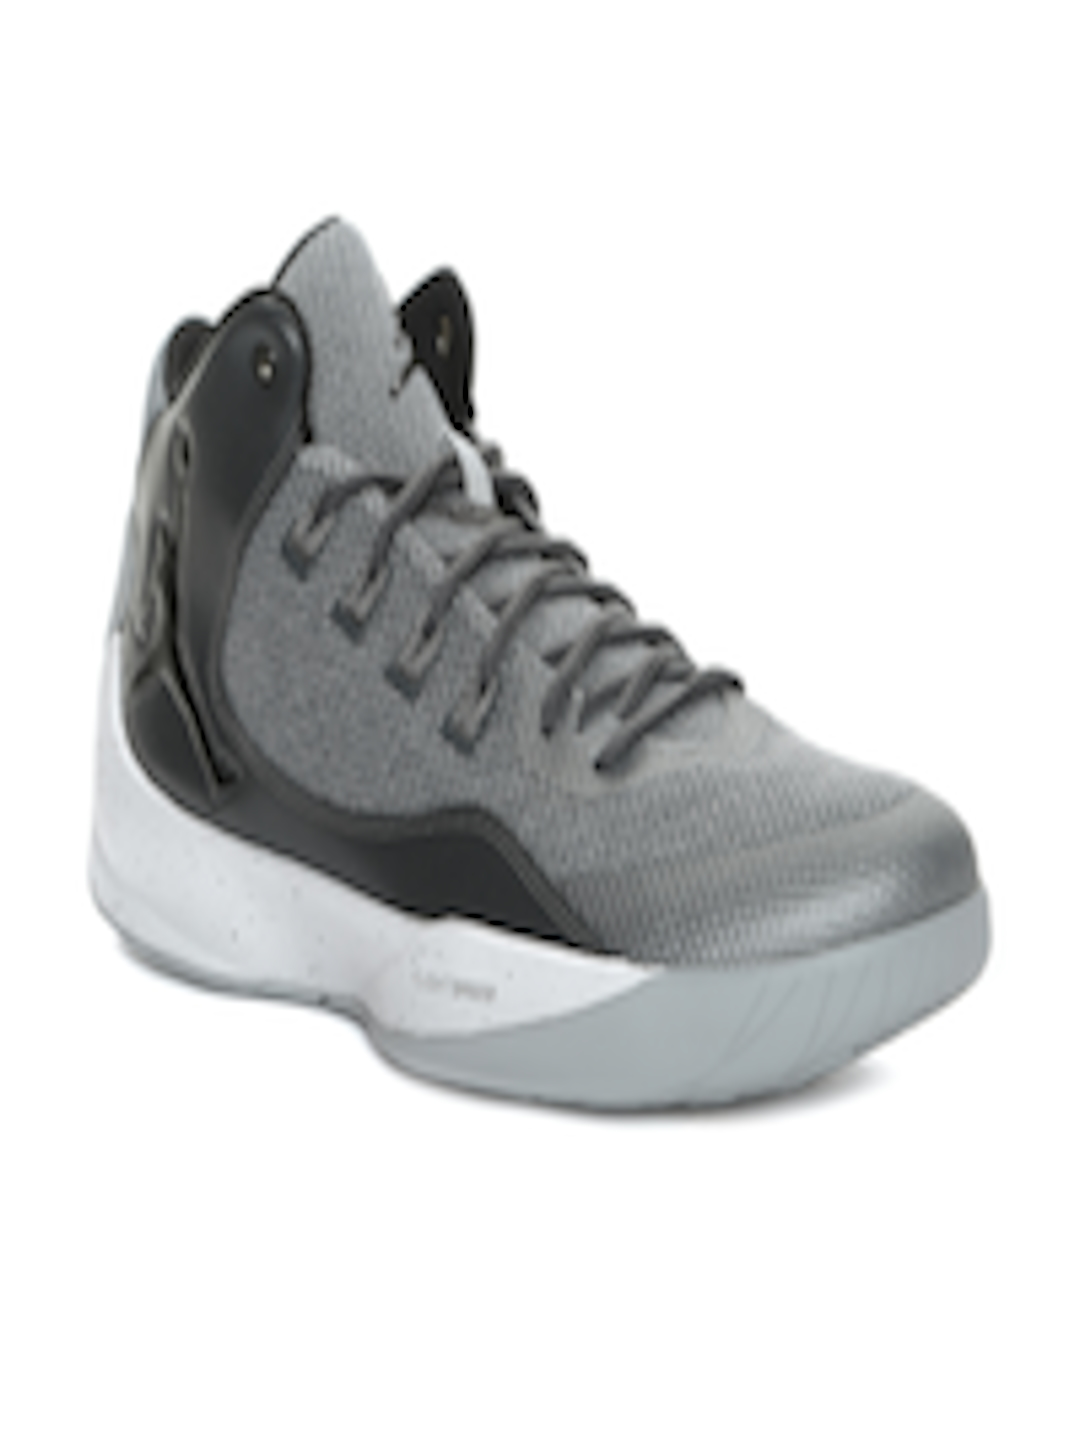 the latest be1ca 22e8b Buy Nike Men Grey Jordan Rising High 2 Basketball Shoes - - Footwear for Men